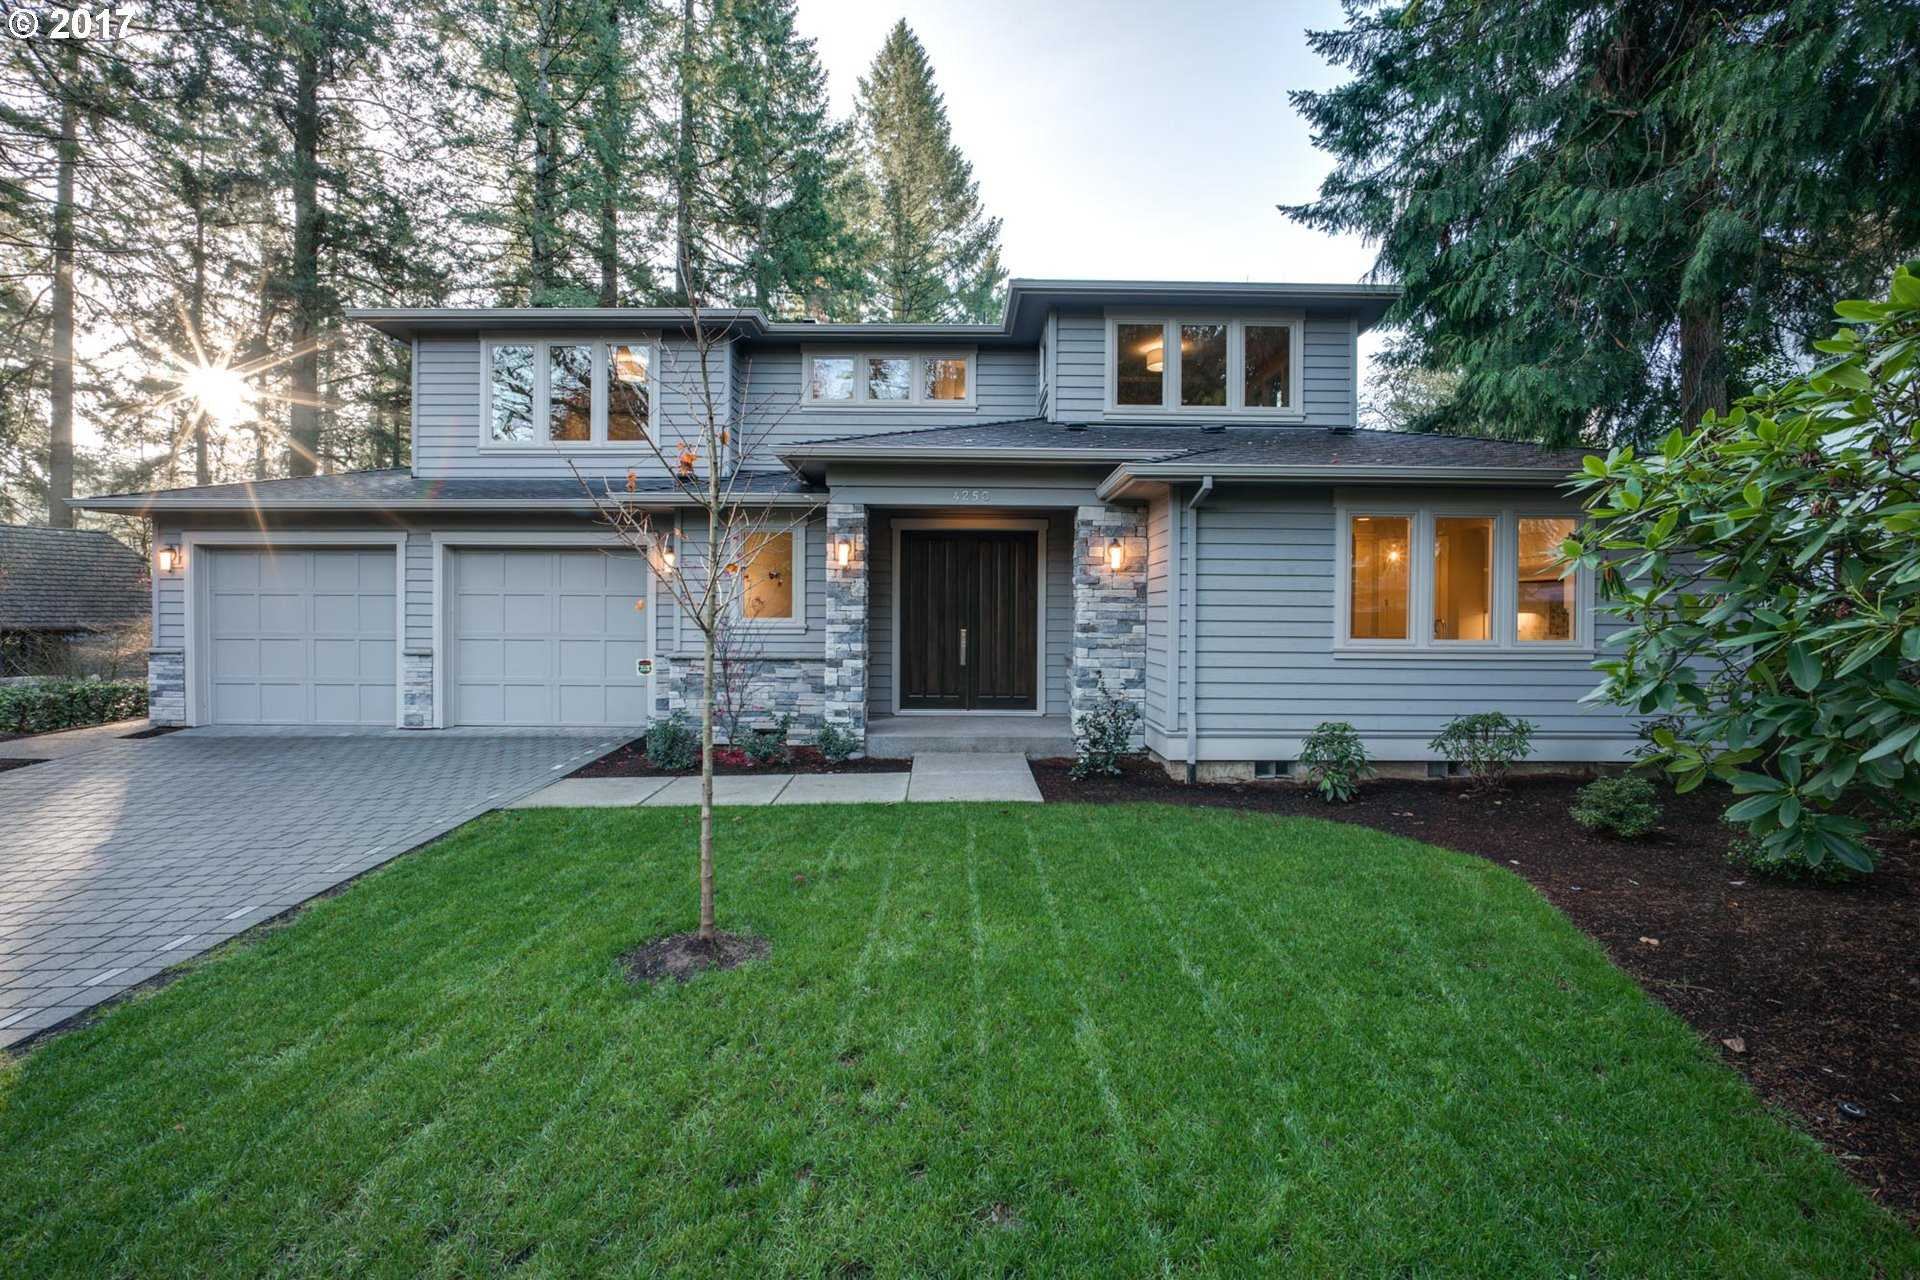 $1,249,000 - 4Br/4Ba -  for Sale in Lake Oswego